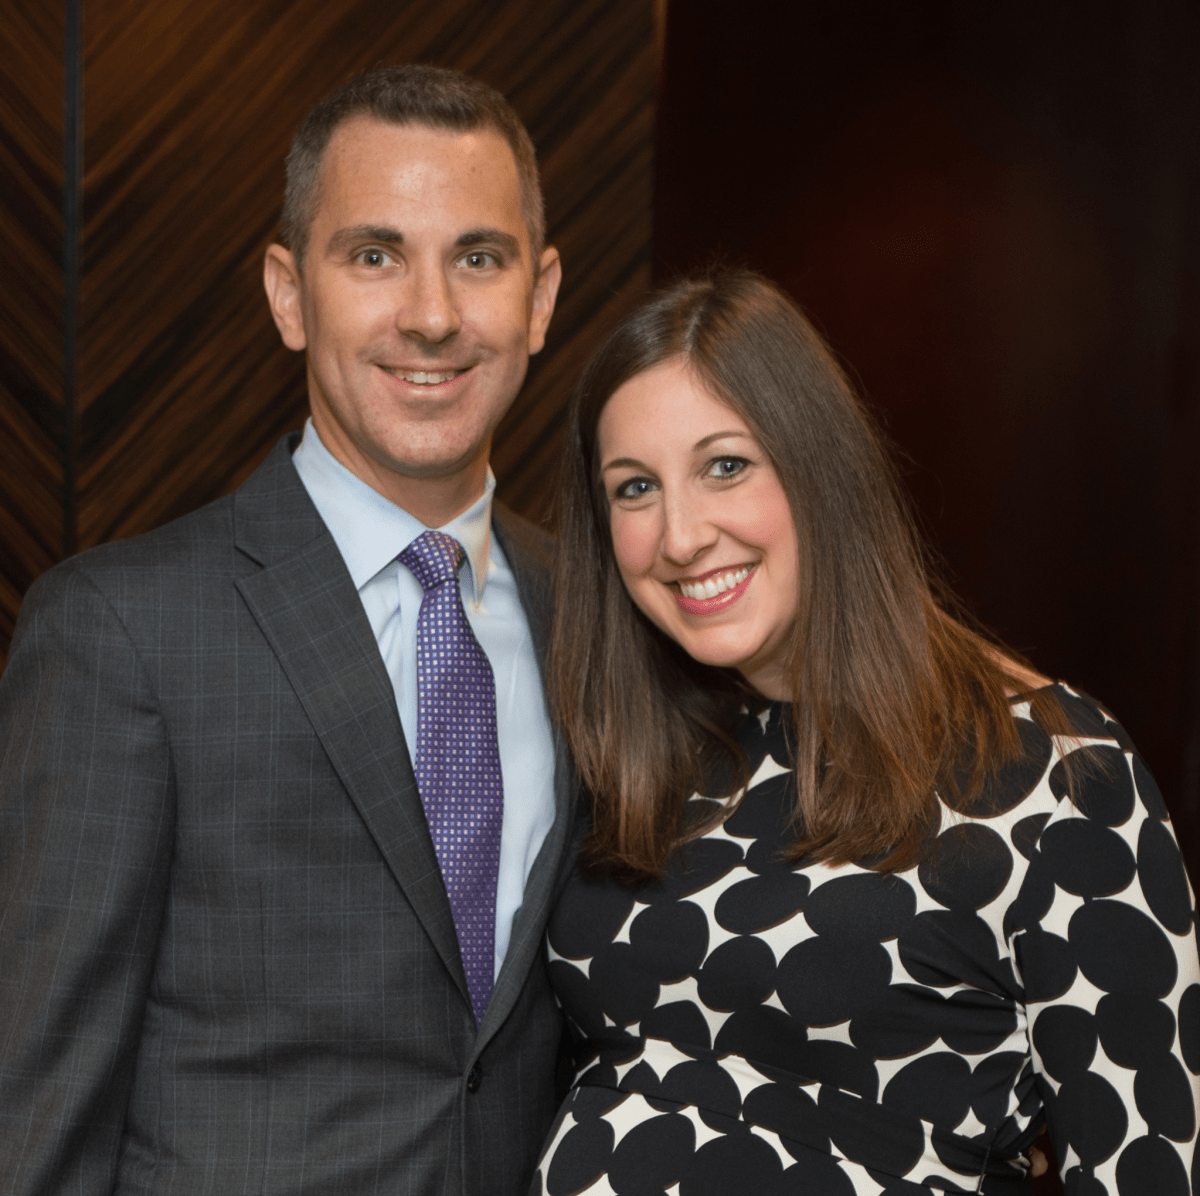 News, Shelby, Holocaust museum luncheon, Nov. 2015, David and Jennifer Stockel.